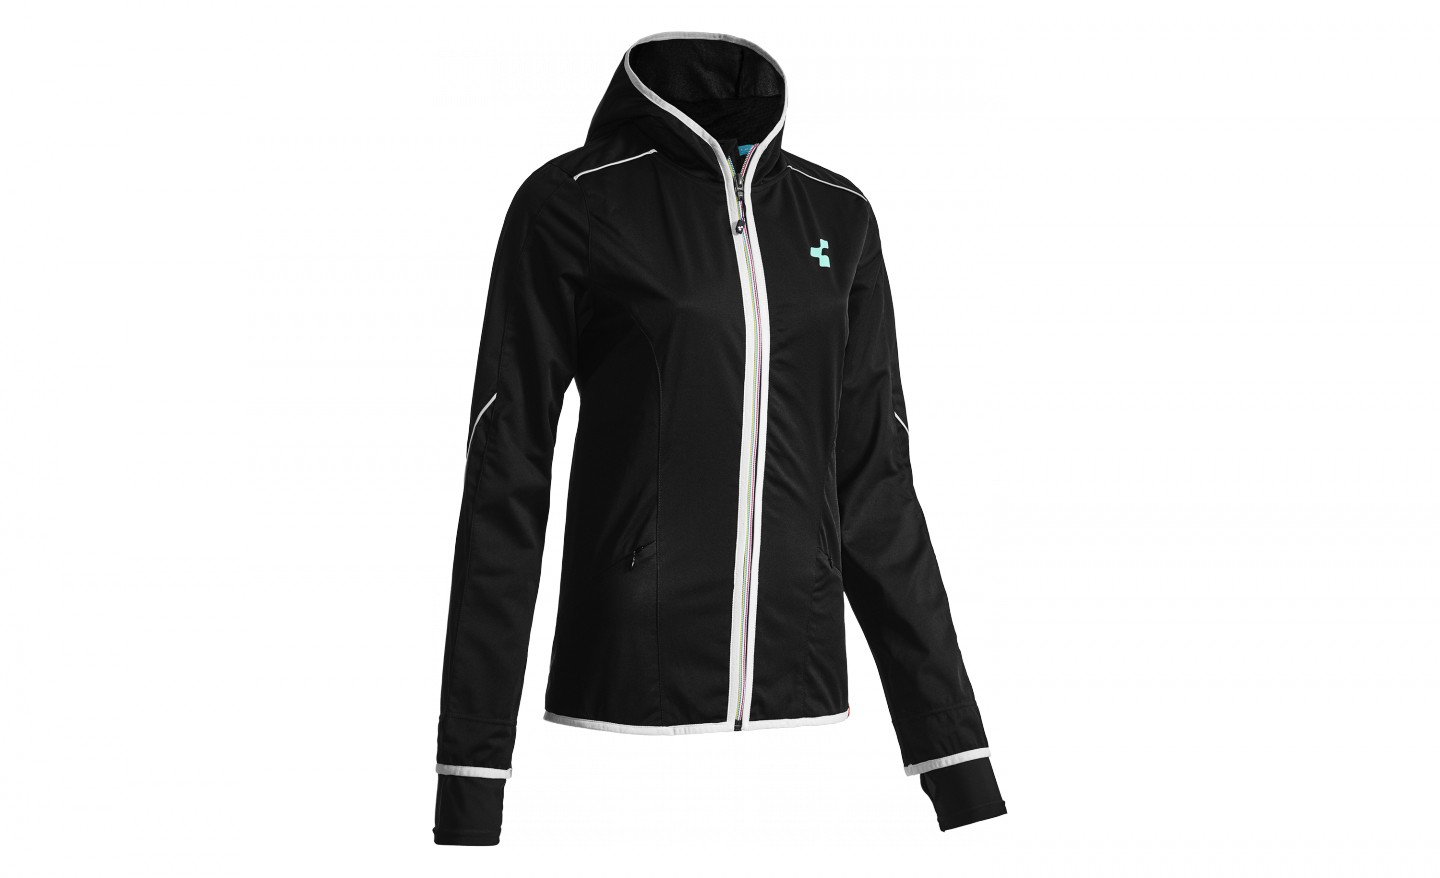 CUBE TOUR WLS Jacket Multifunctional